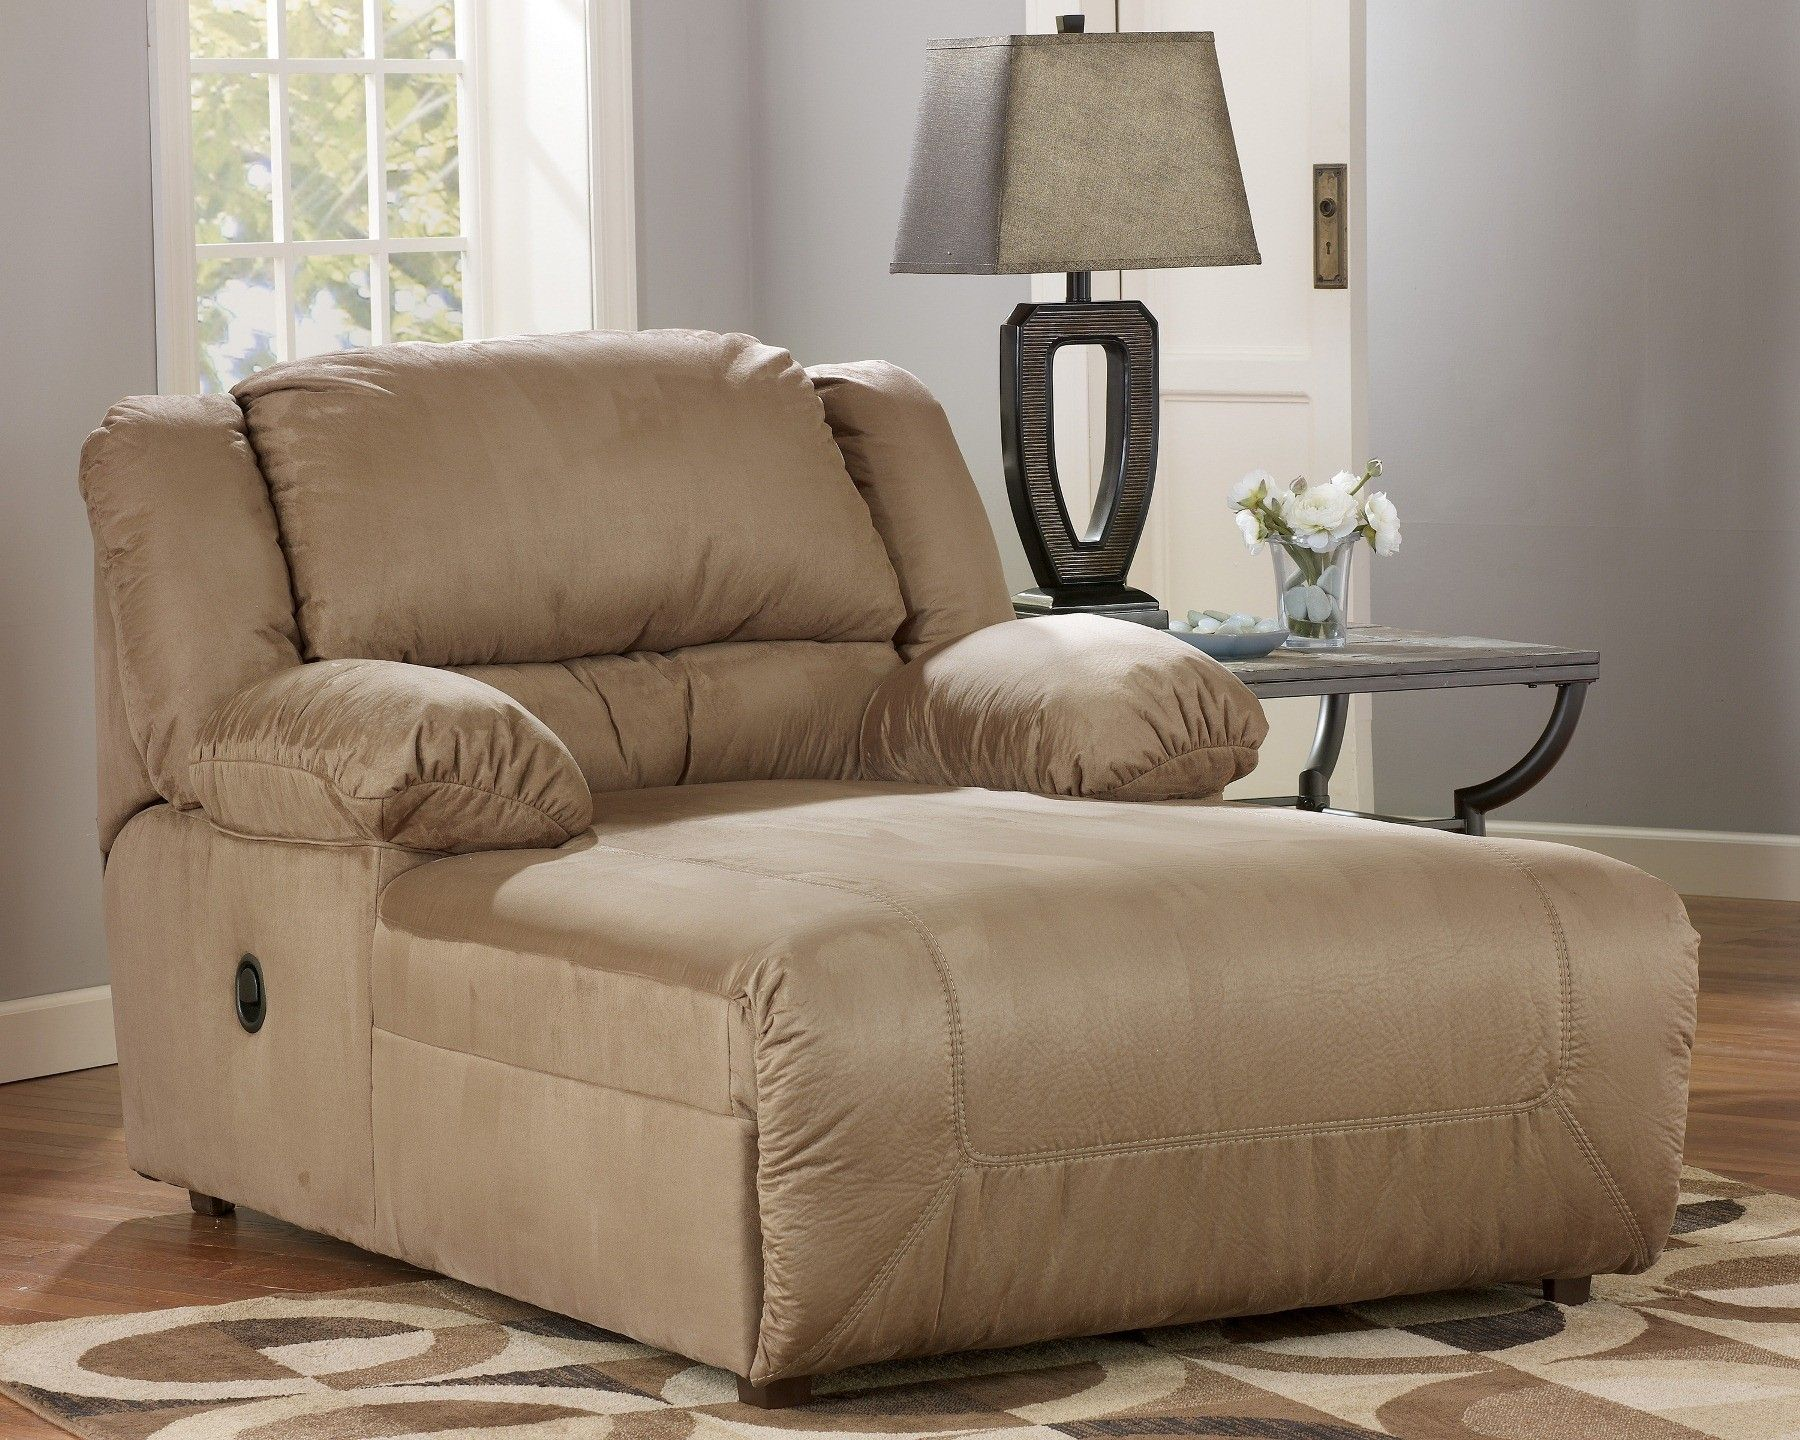 Best Indoor Oversized Chaise Lounge Hogan Mocha Reclining 400 x 300